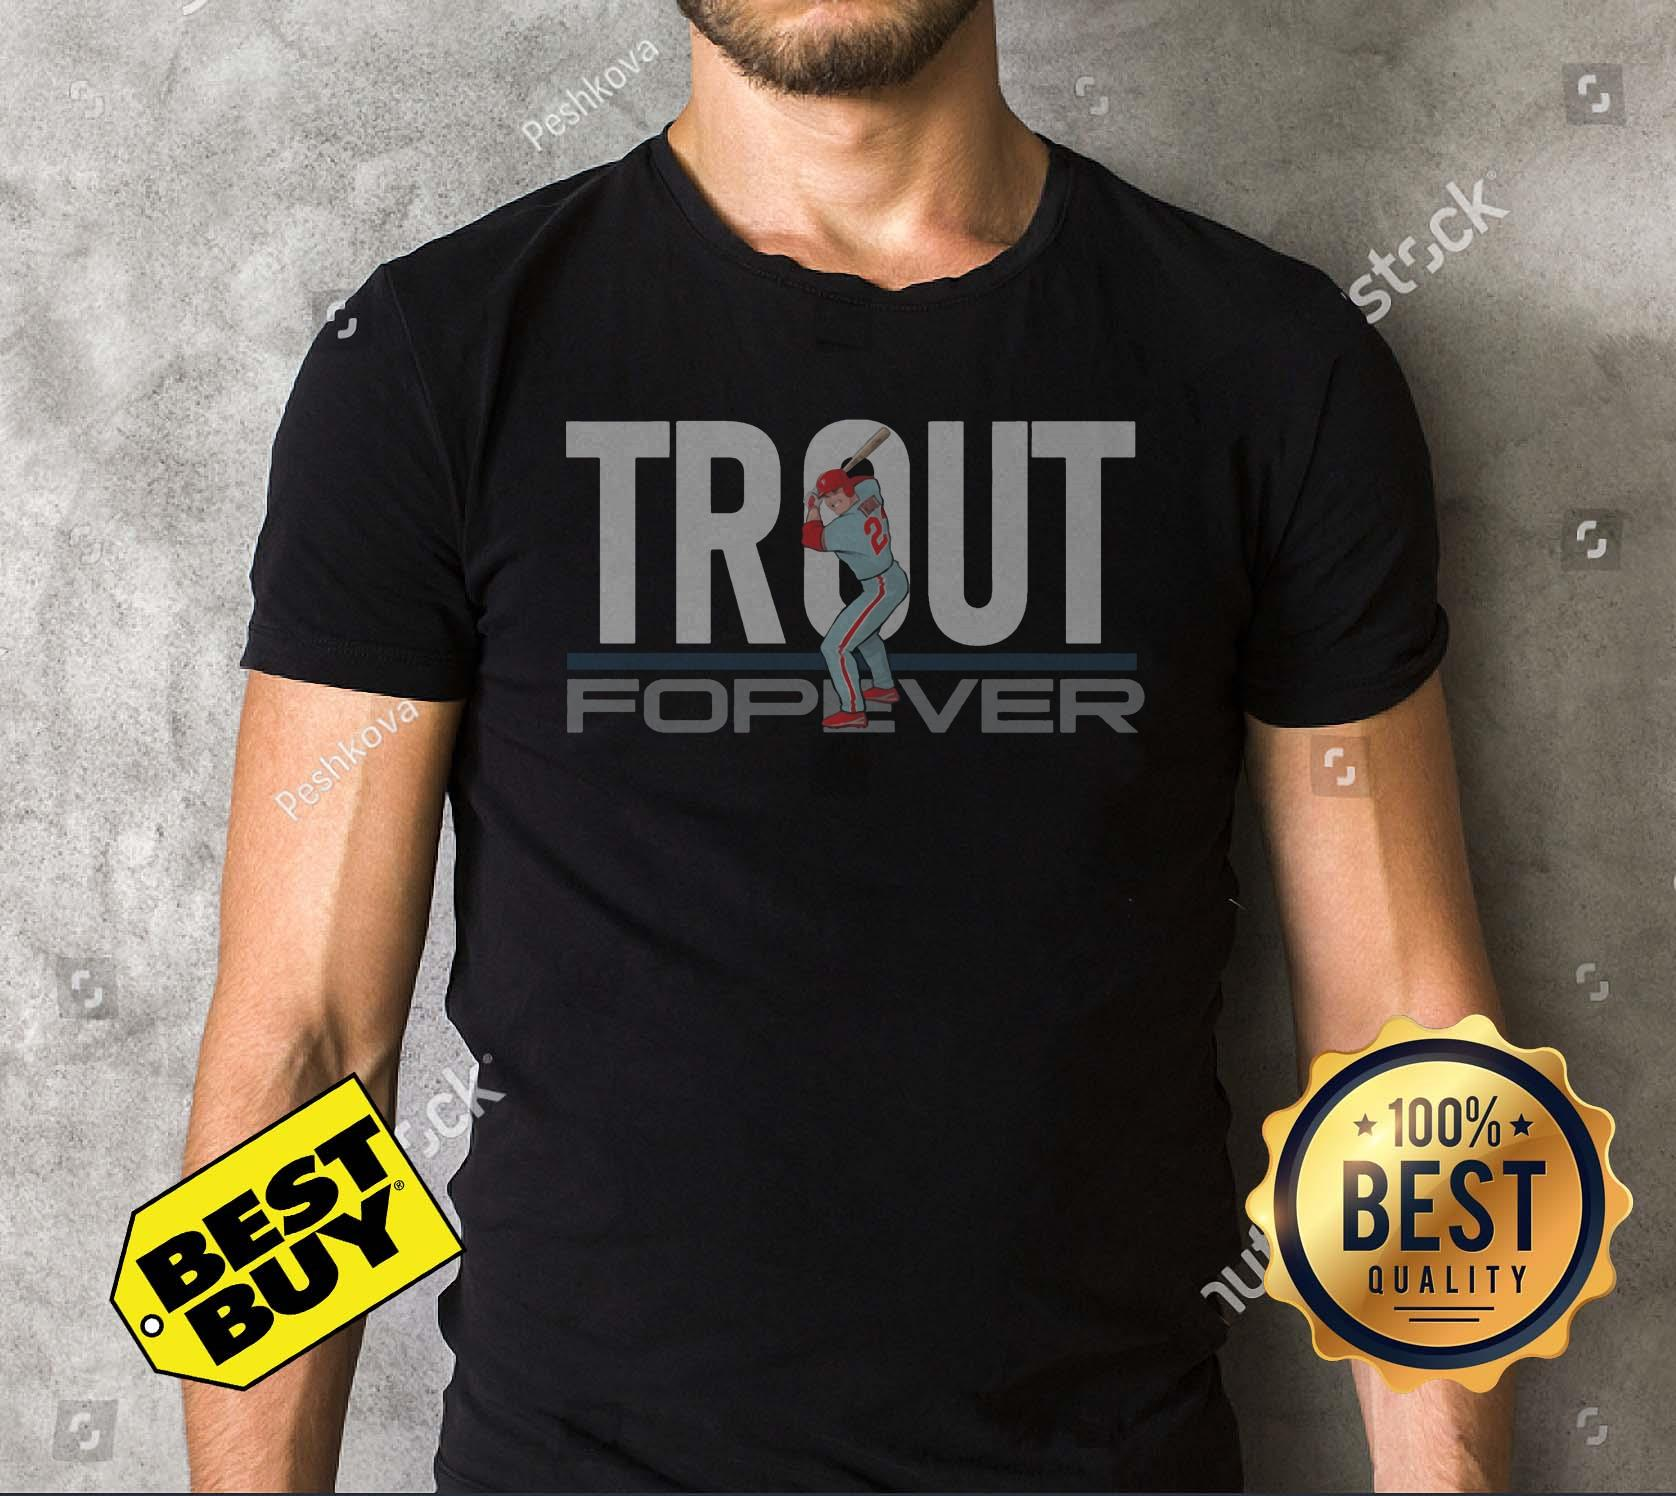 Astros Tuesday Trout Forever tank top